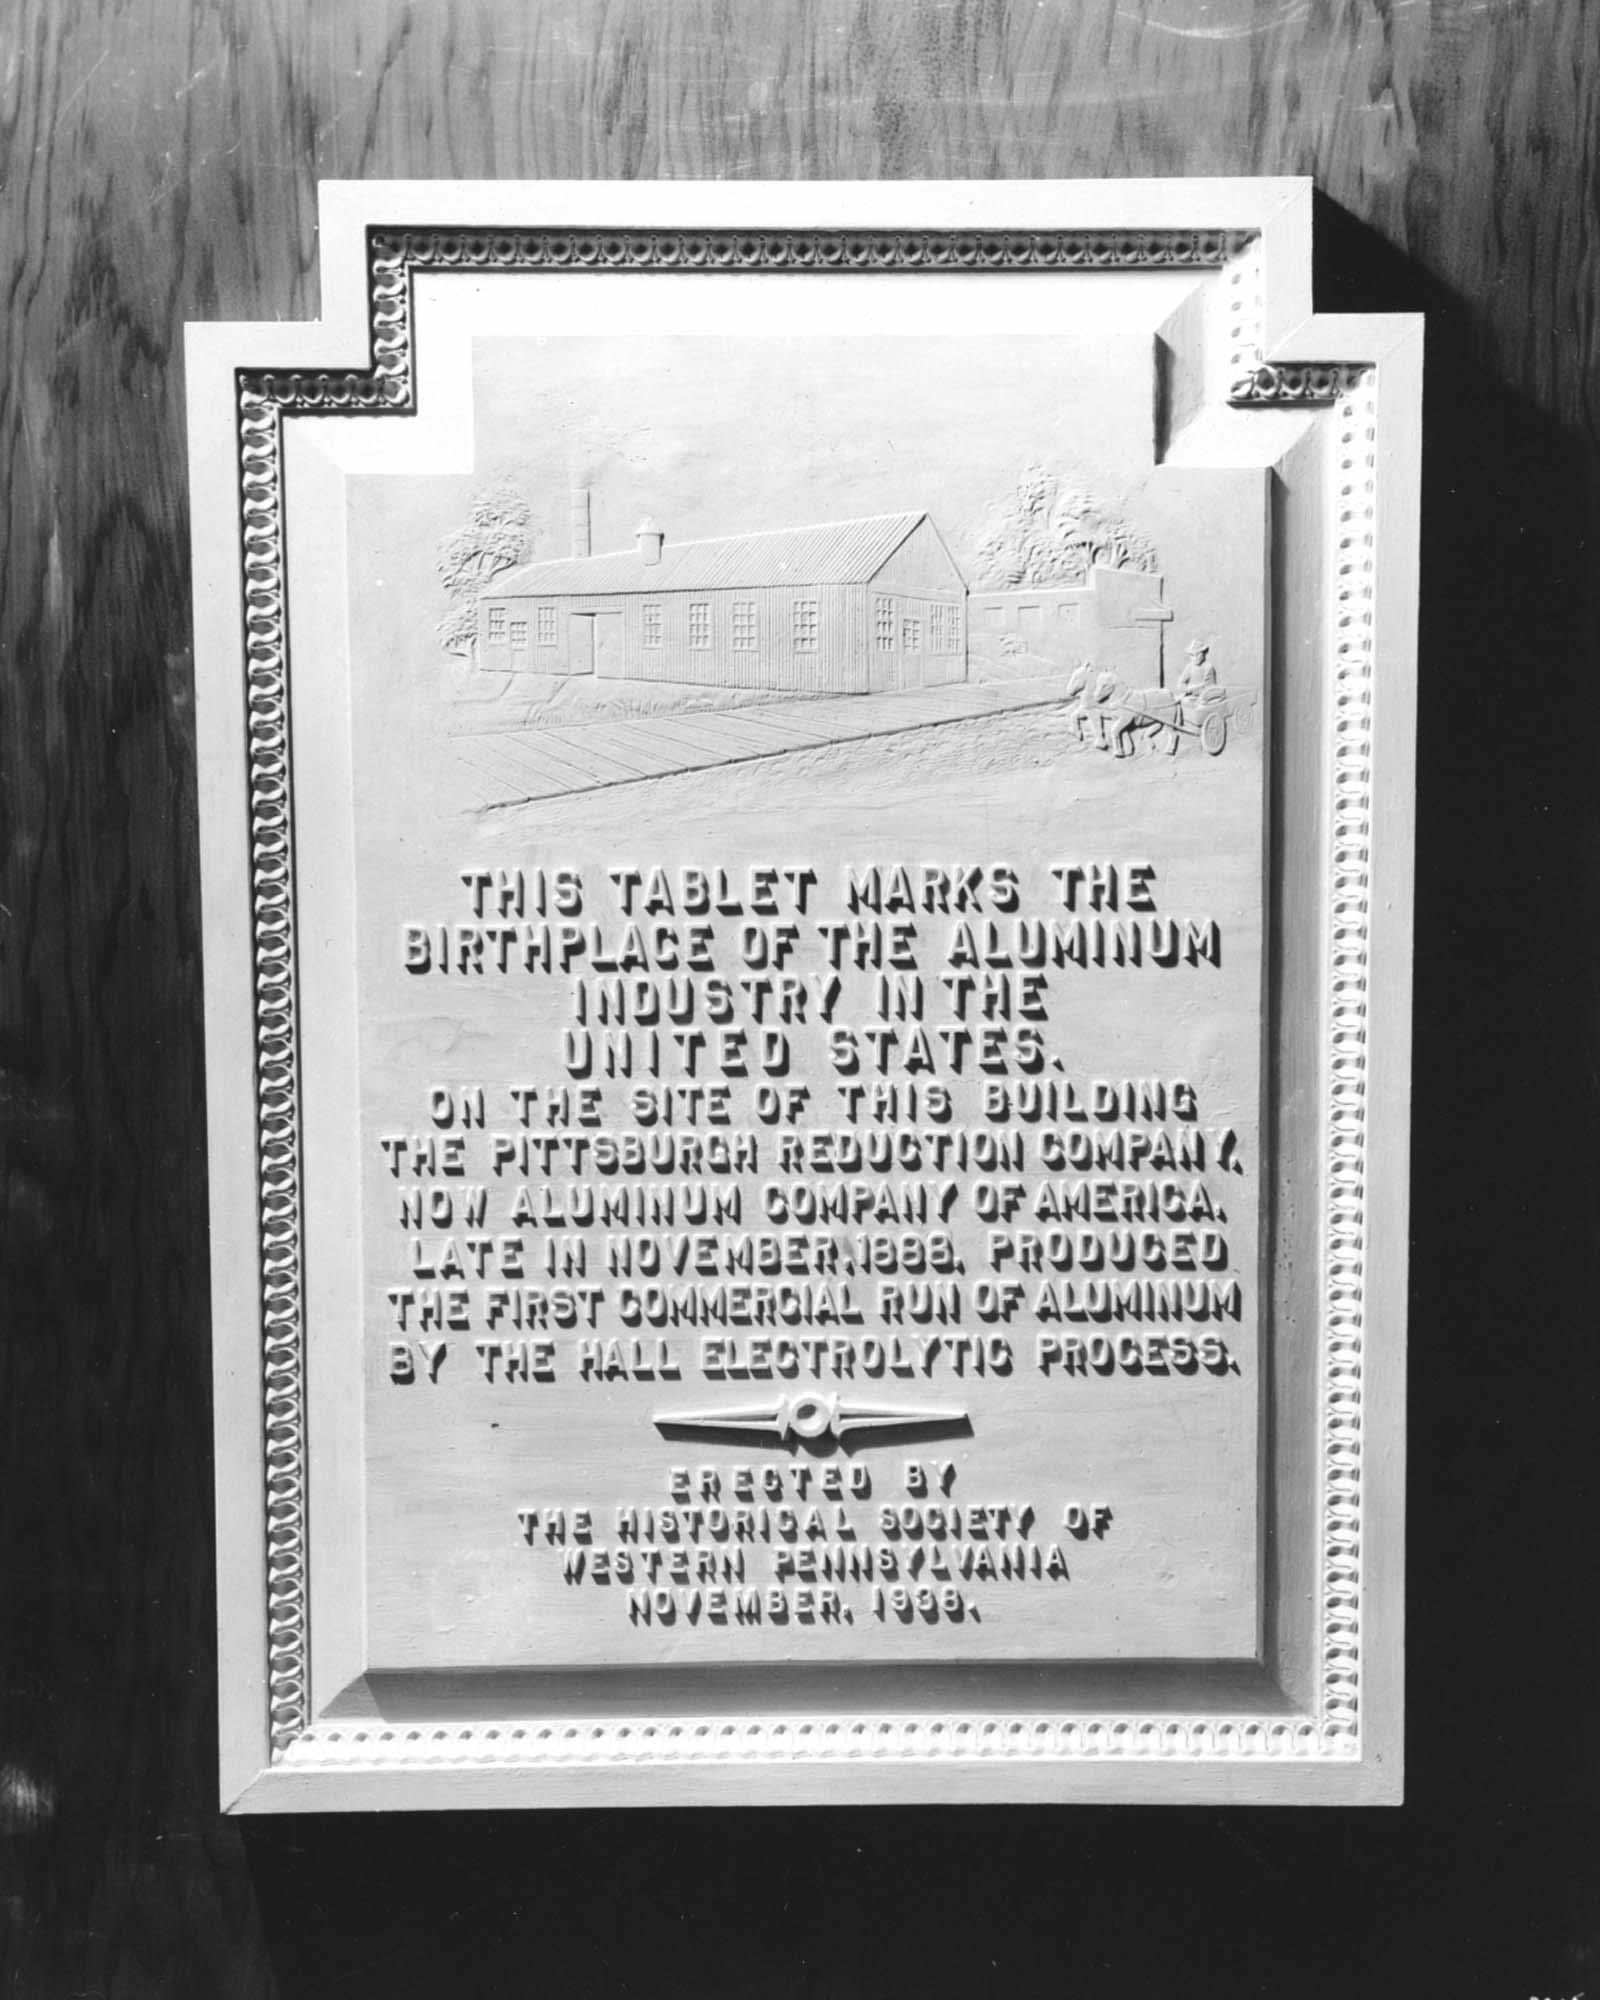 Historical Plaque for the Birthplace of Alumninum Industry